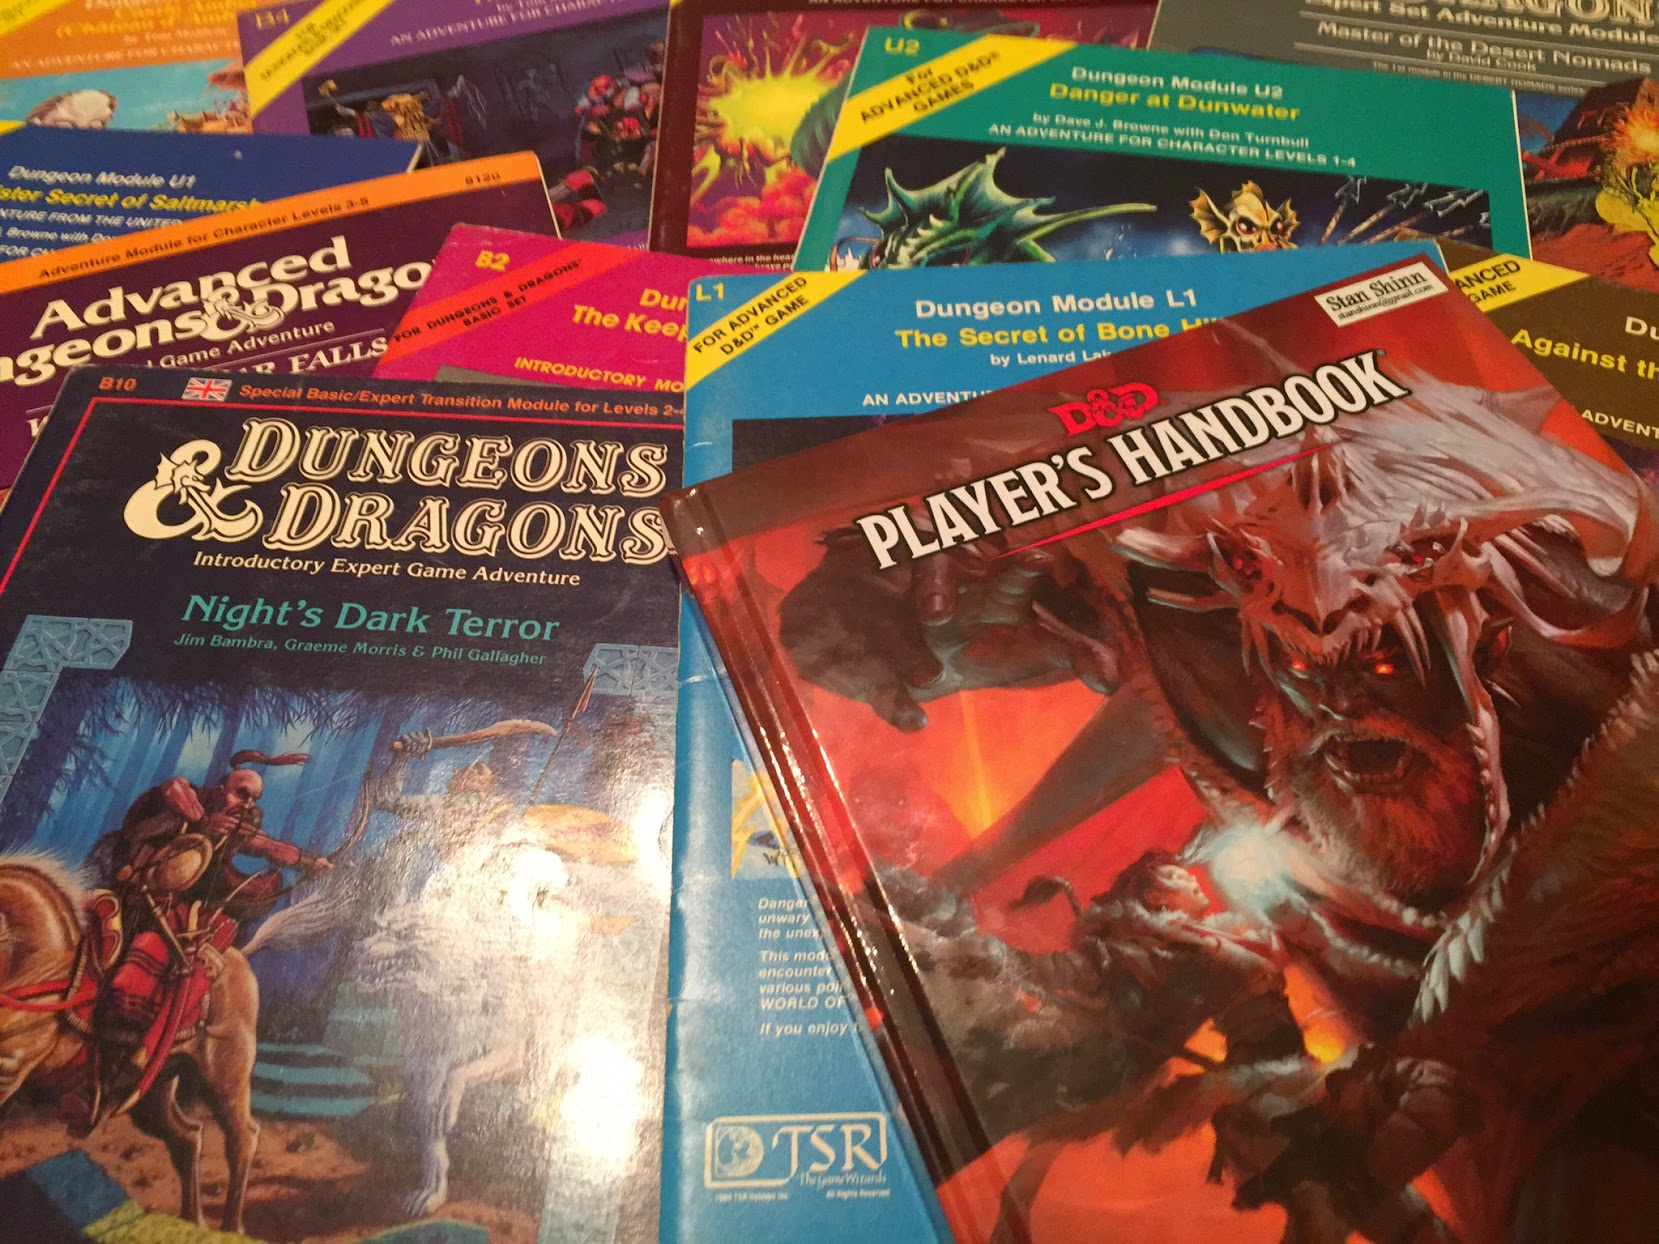 B/X & AD&D Modules Converted to 5e and Forgotten Realms